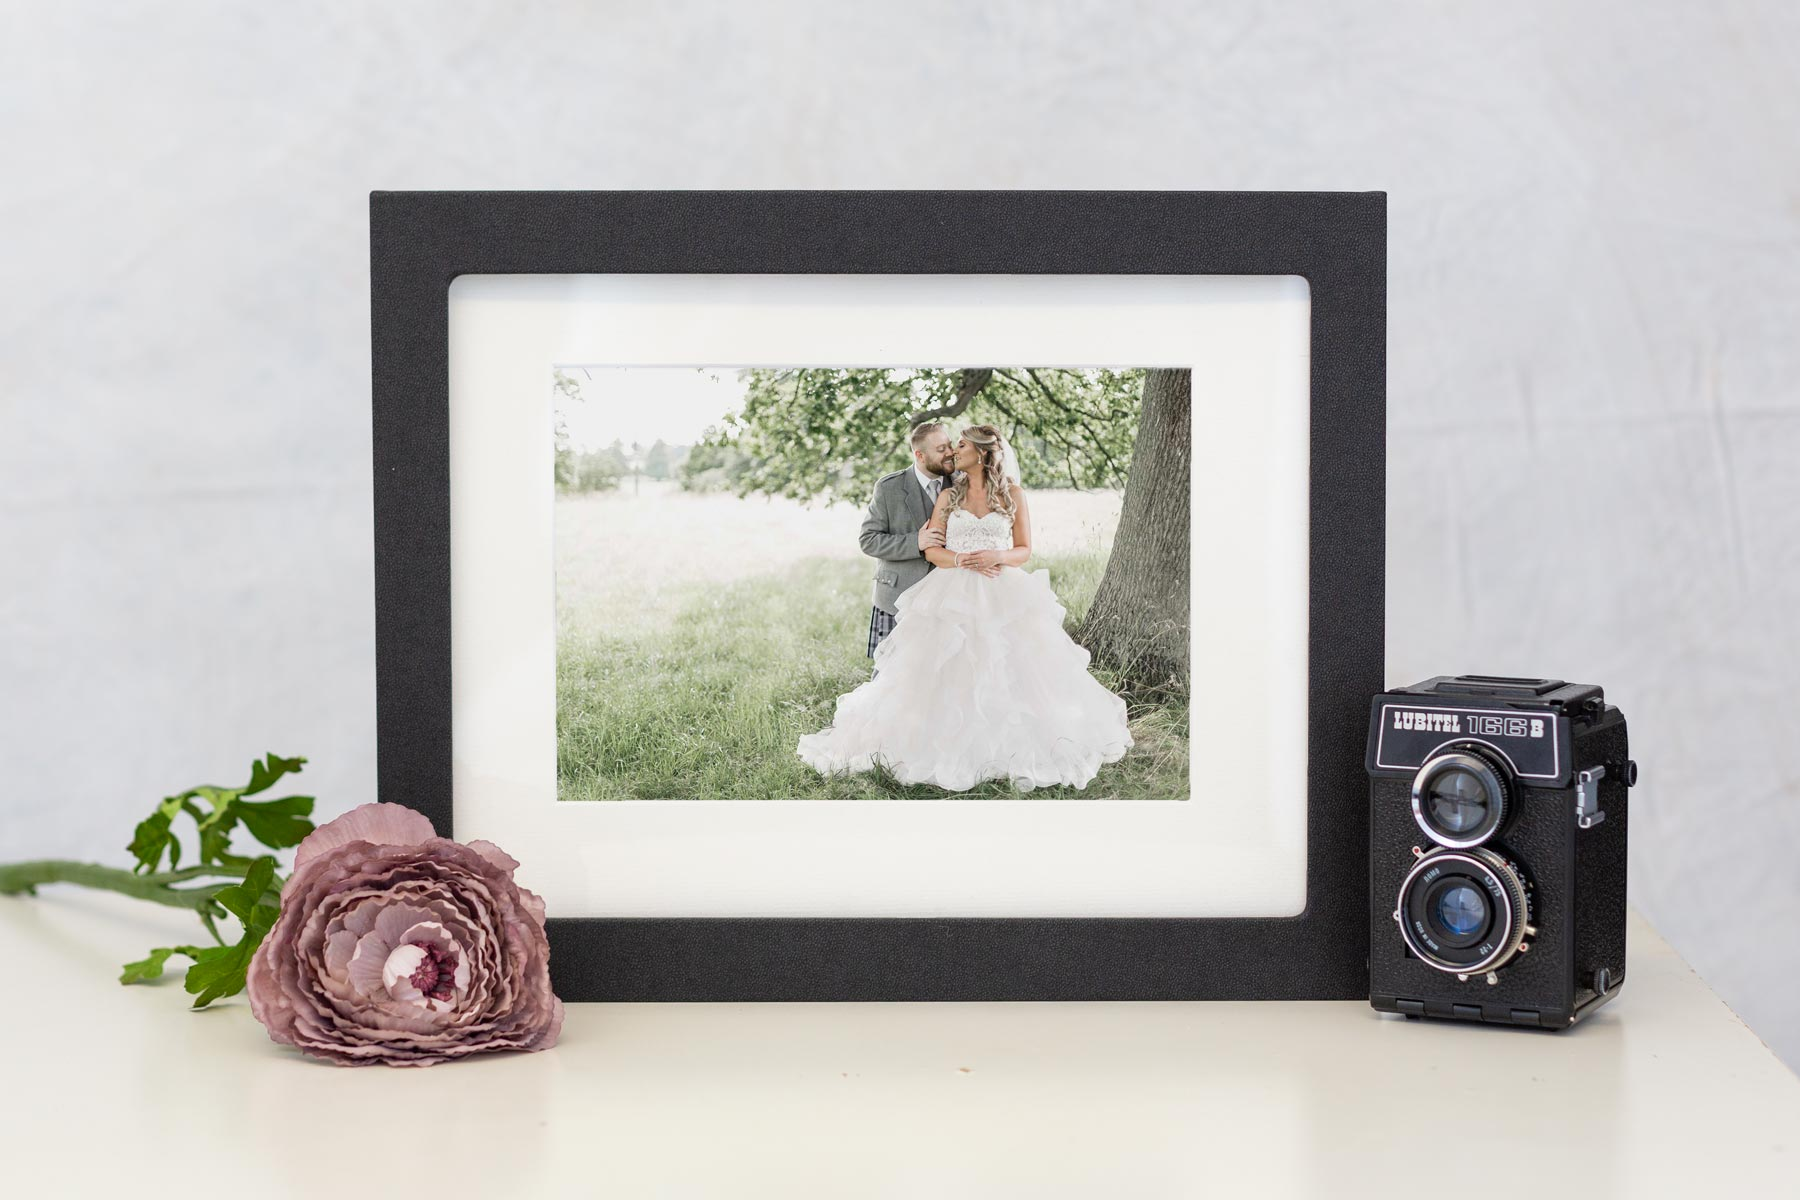 Picture Box to keep images stored and on display